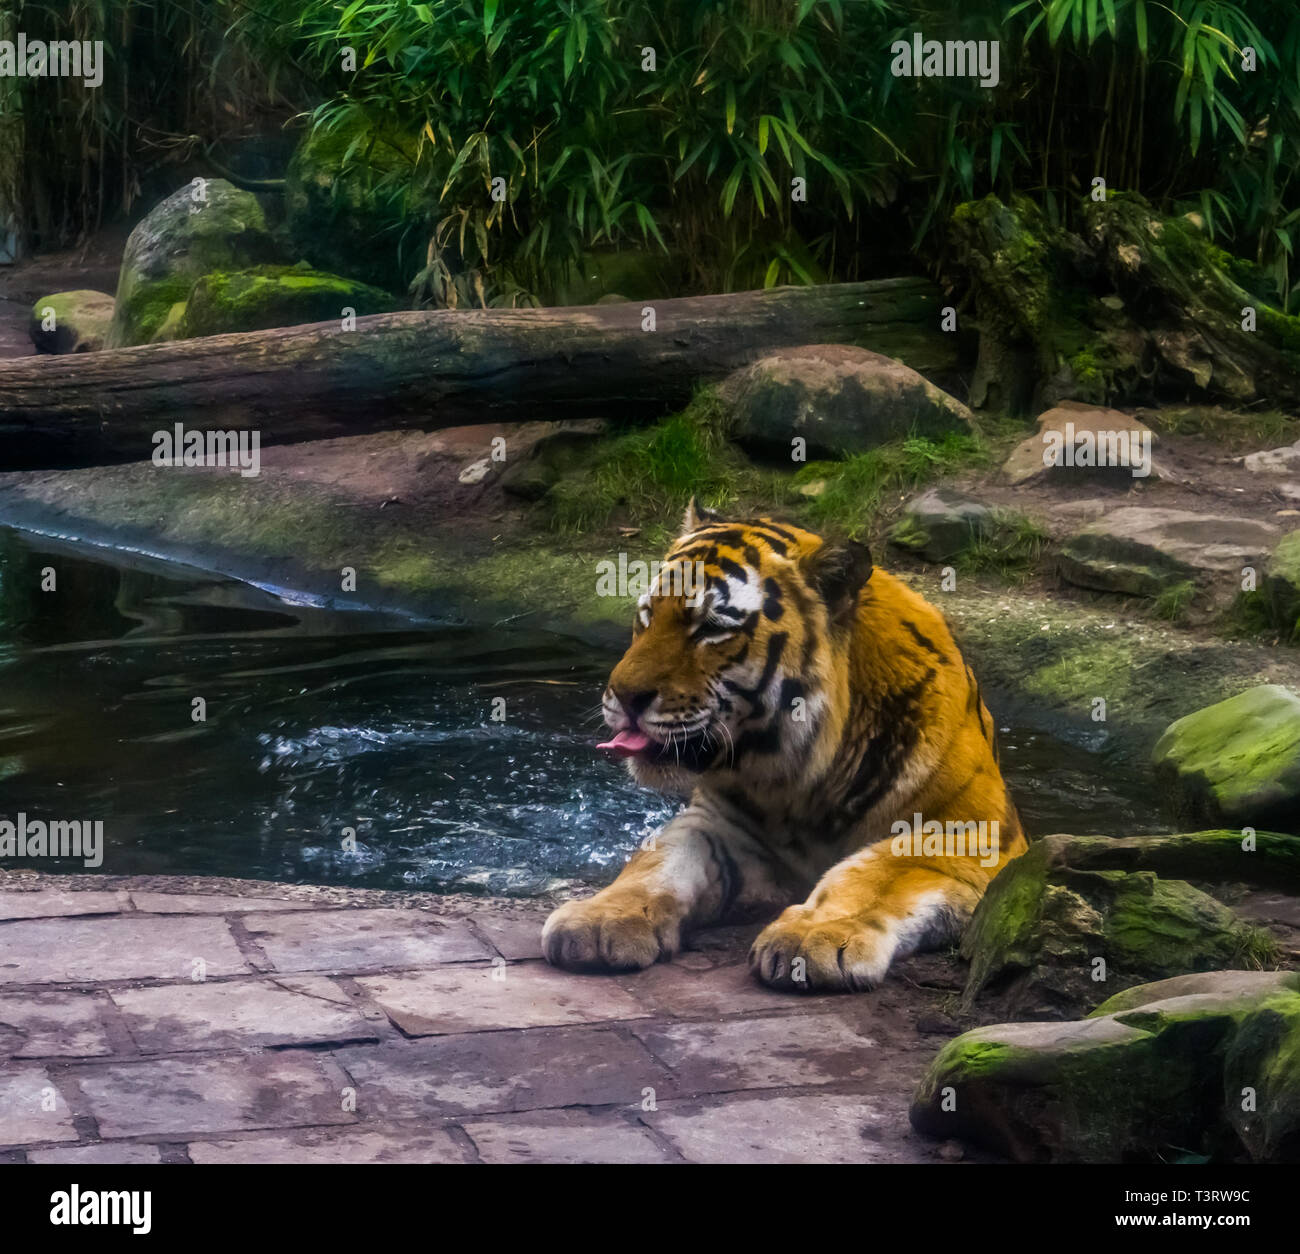 portrait of a siberian tiger bathing in the water, tiger washing its self, animal behavior, Endangered animal species Stock Photo